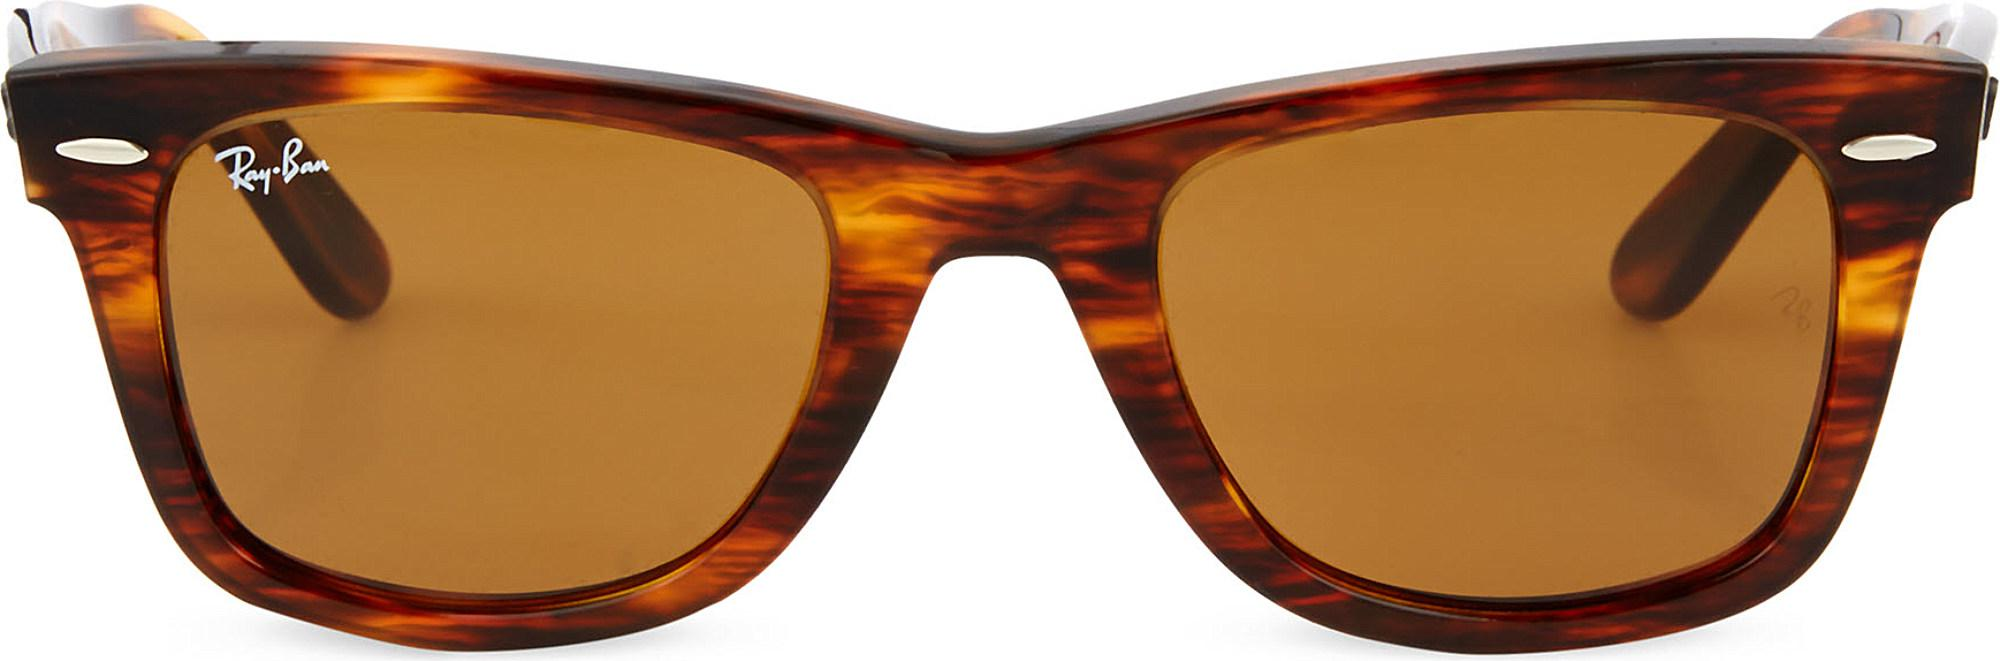 Lyst Ray Ban Matte Light Tortoiseshell Wayfarer Sunglasses Rb2140 Byo Shell Clutch In Burgundy View Fullscreen